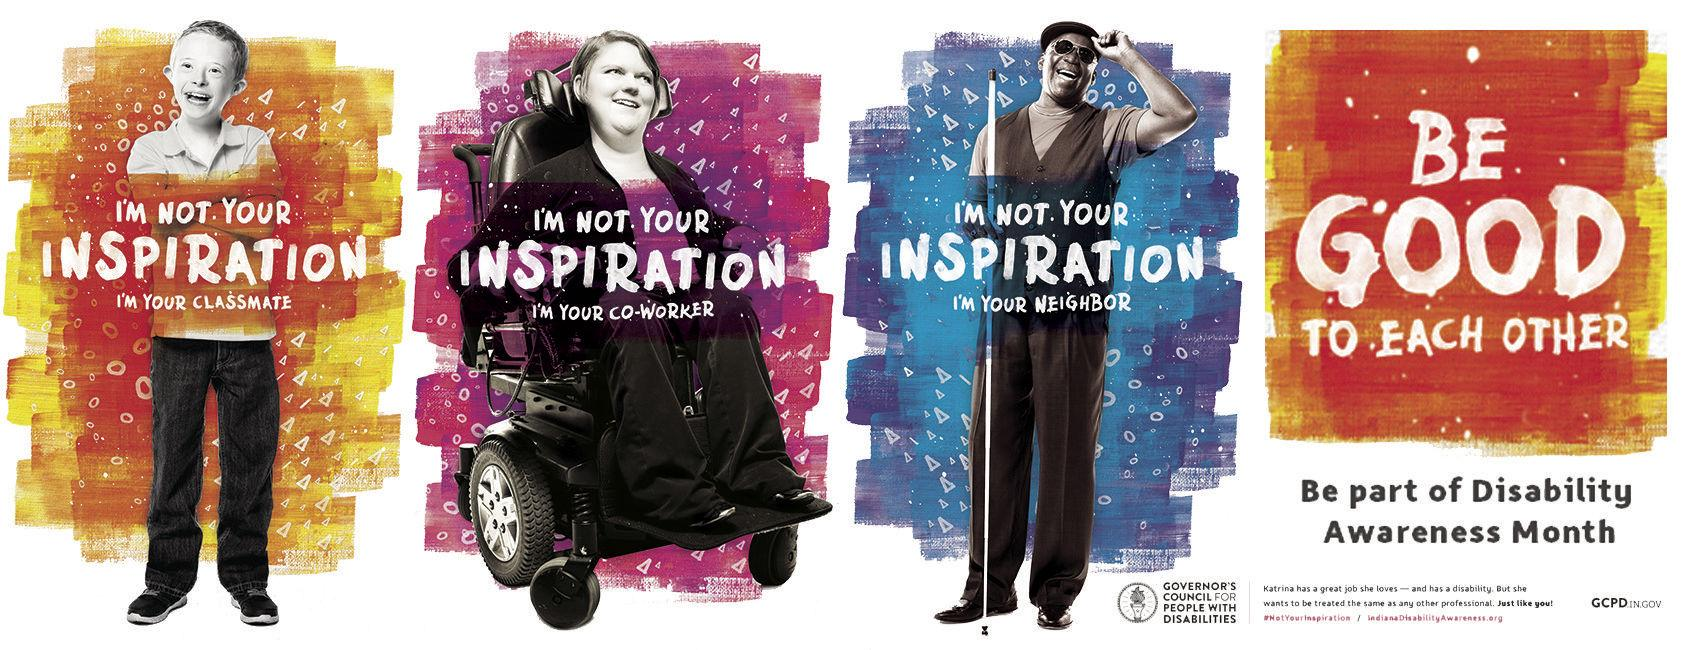 "Image: indianadisabilityawareness.org A poster for the ""I'm Not Your Inspiration"" awareness campaign by the Indiana Governor's Council for People with Disabilities. A portrait-style photo of a boy is juxtaposed against an orange backsplash with text that reads: I'm Not Your Inspiration (I'm Your Classmate)."